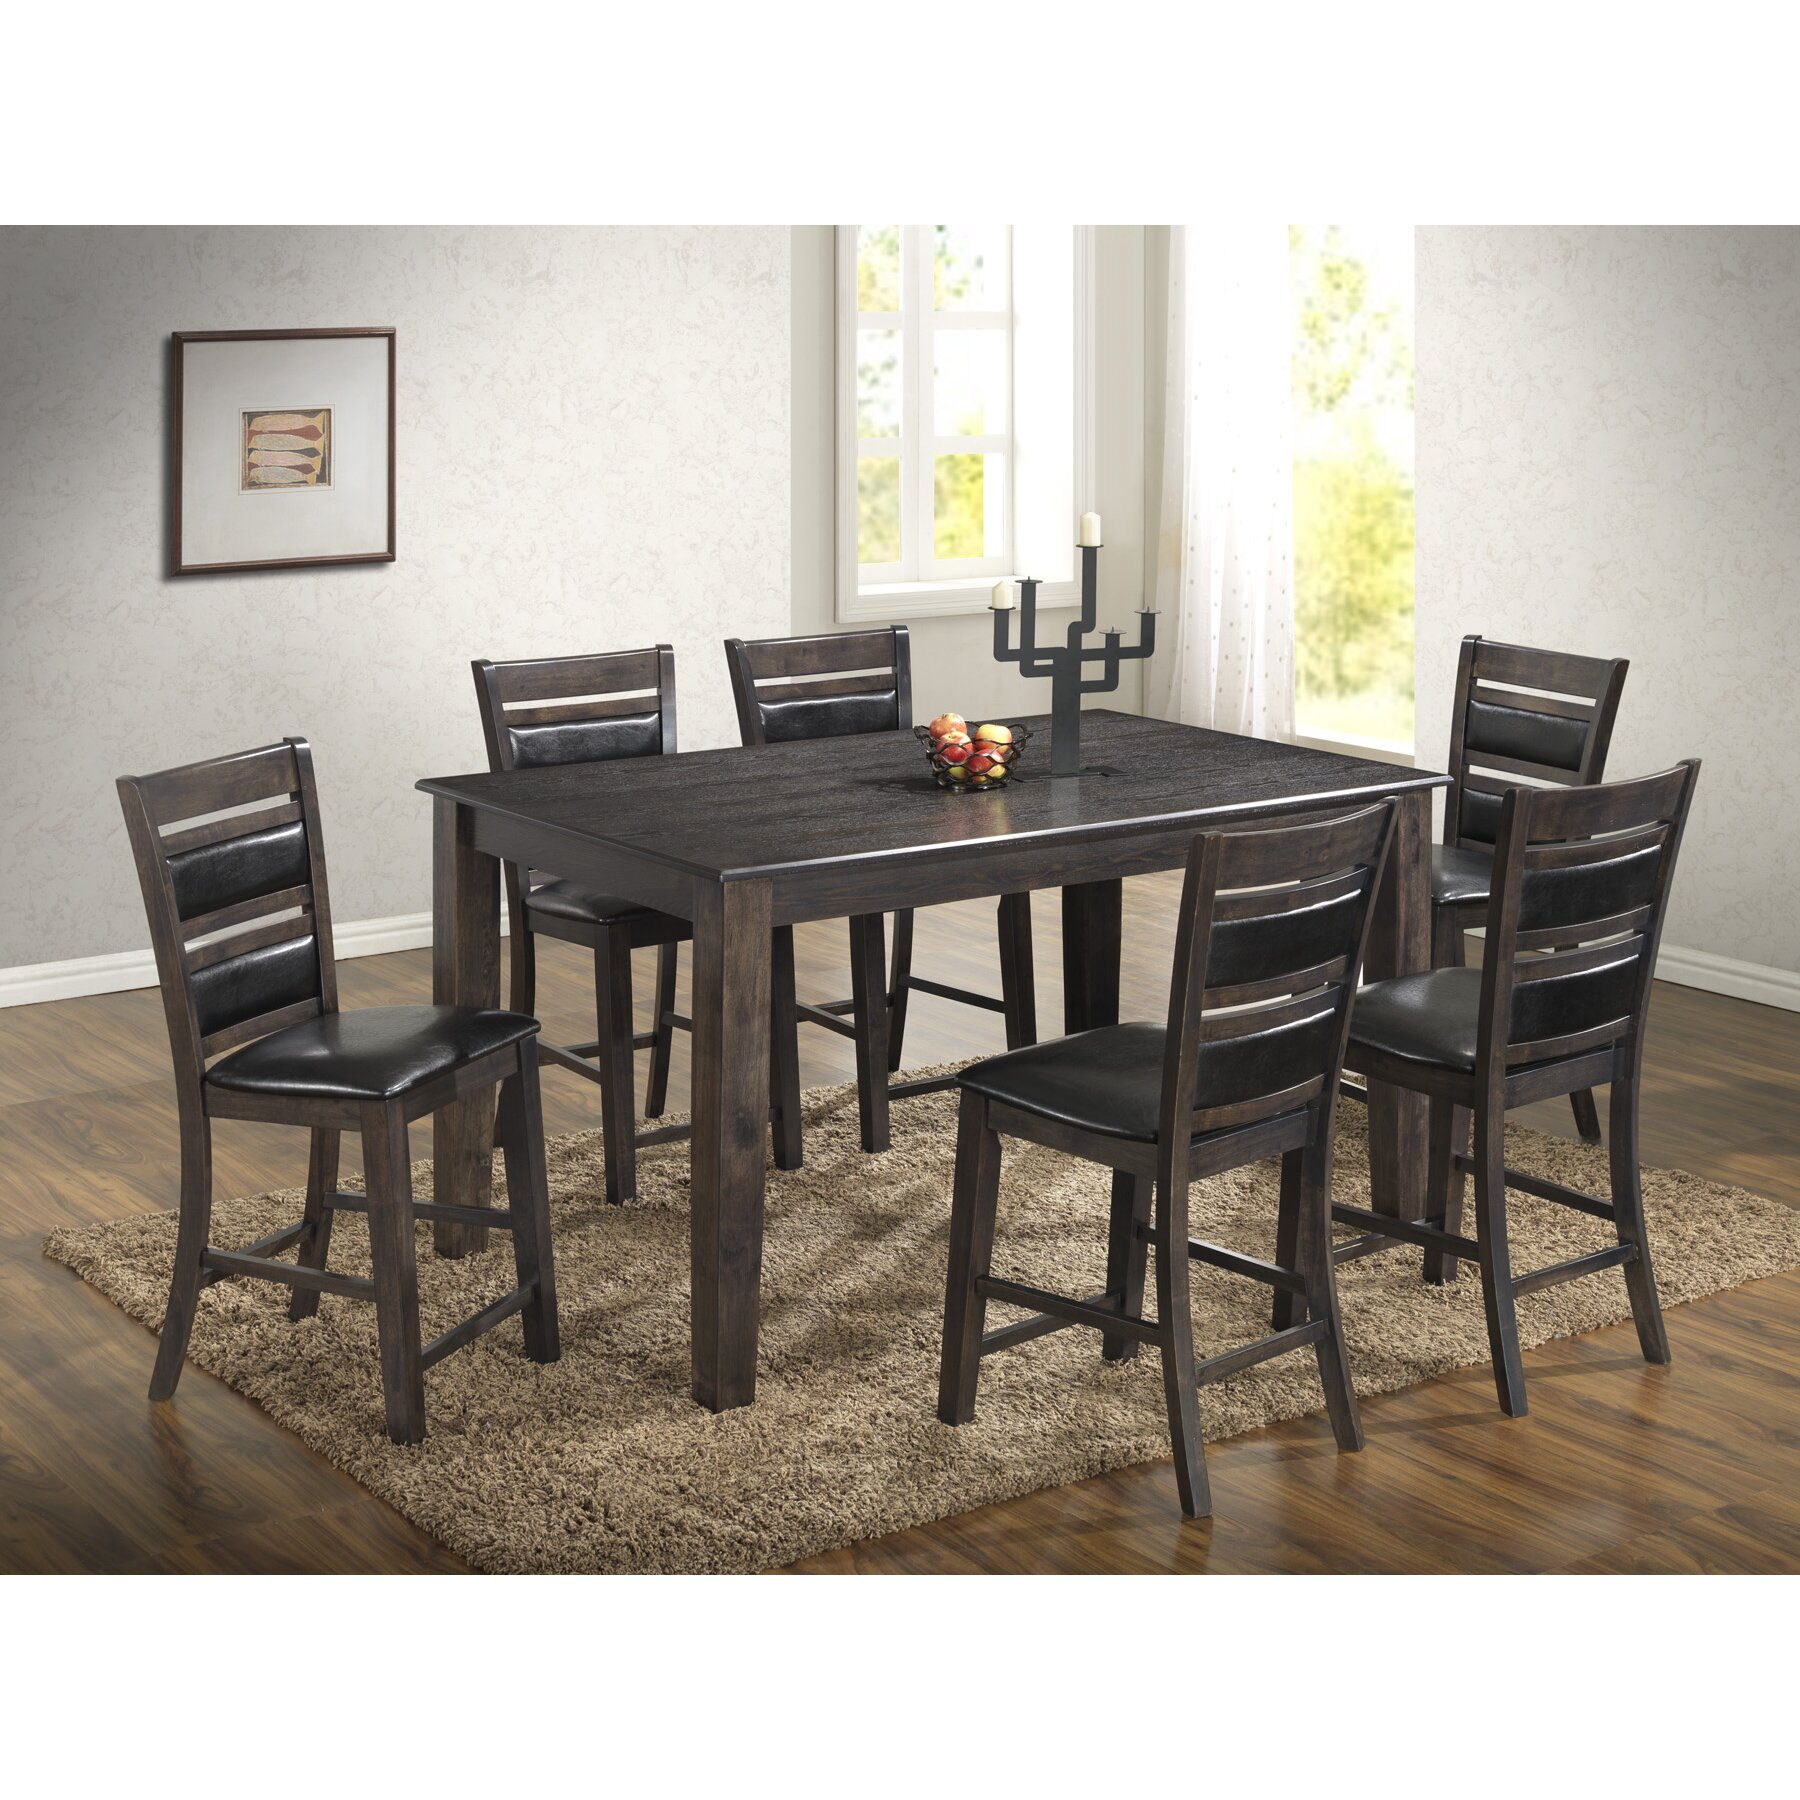 Best quality furniture piece dining set reviews wayfair